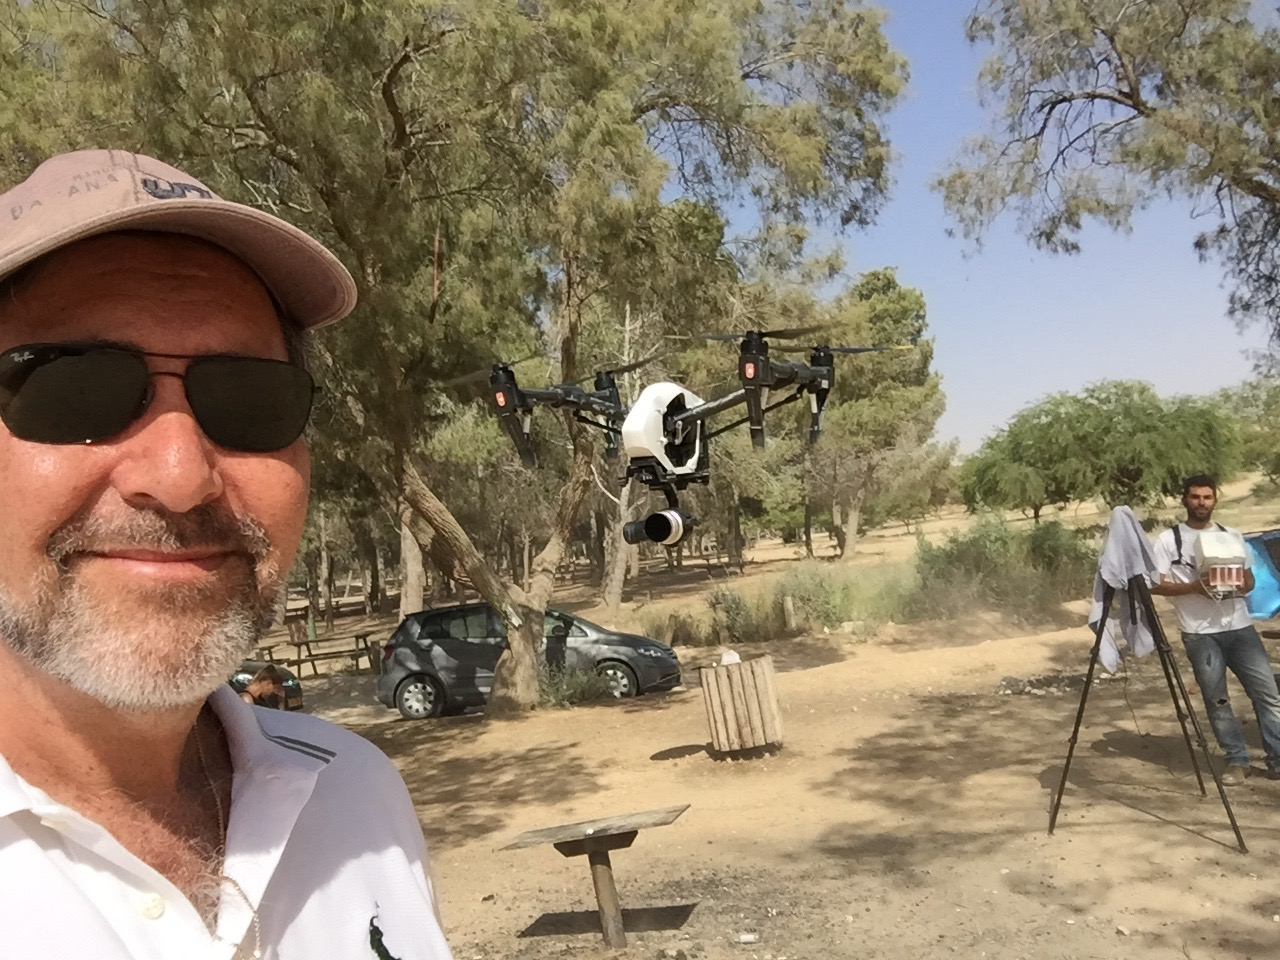 Drone cinematography in Yerucahm - the Southern Negev